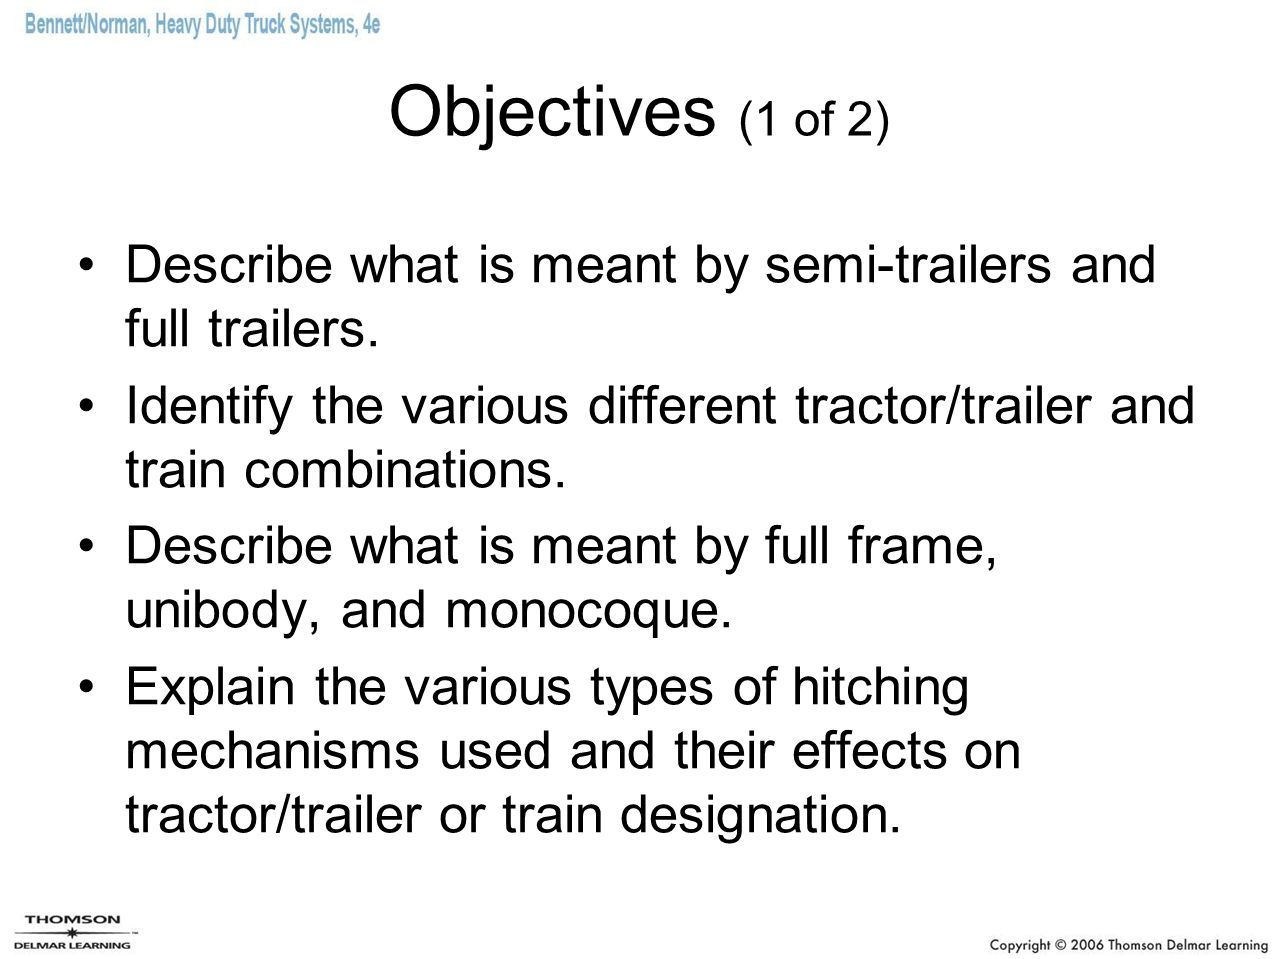 Objectives (1 of 2) Describe what is meant by semi-trailers and full trailers.